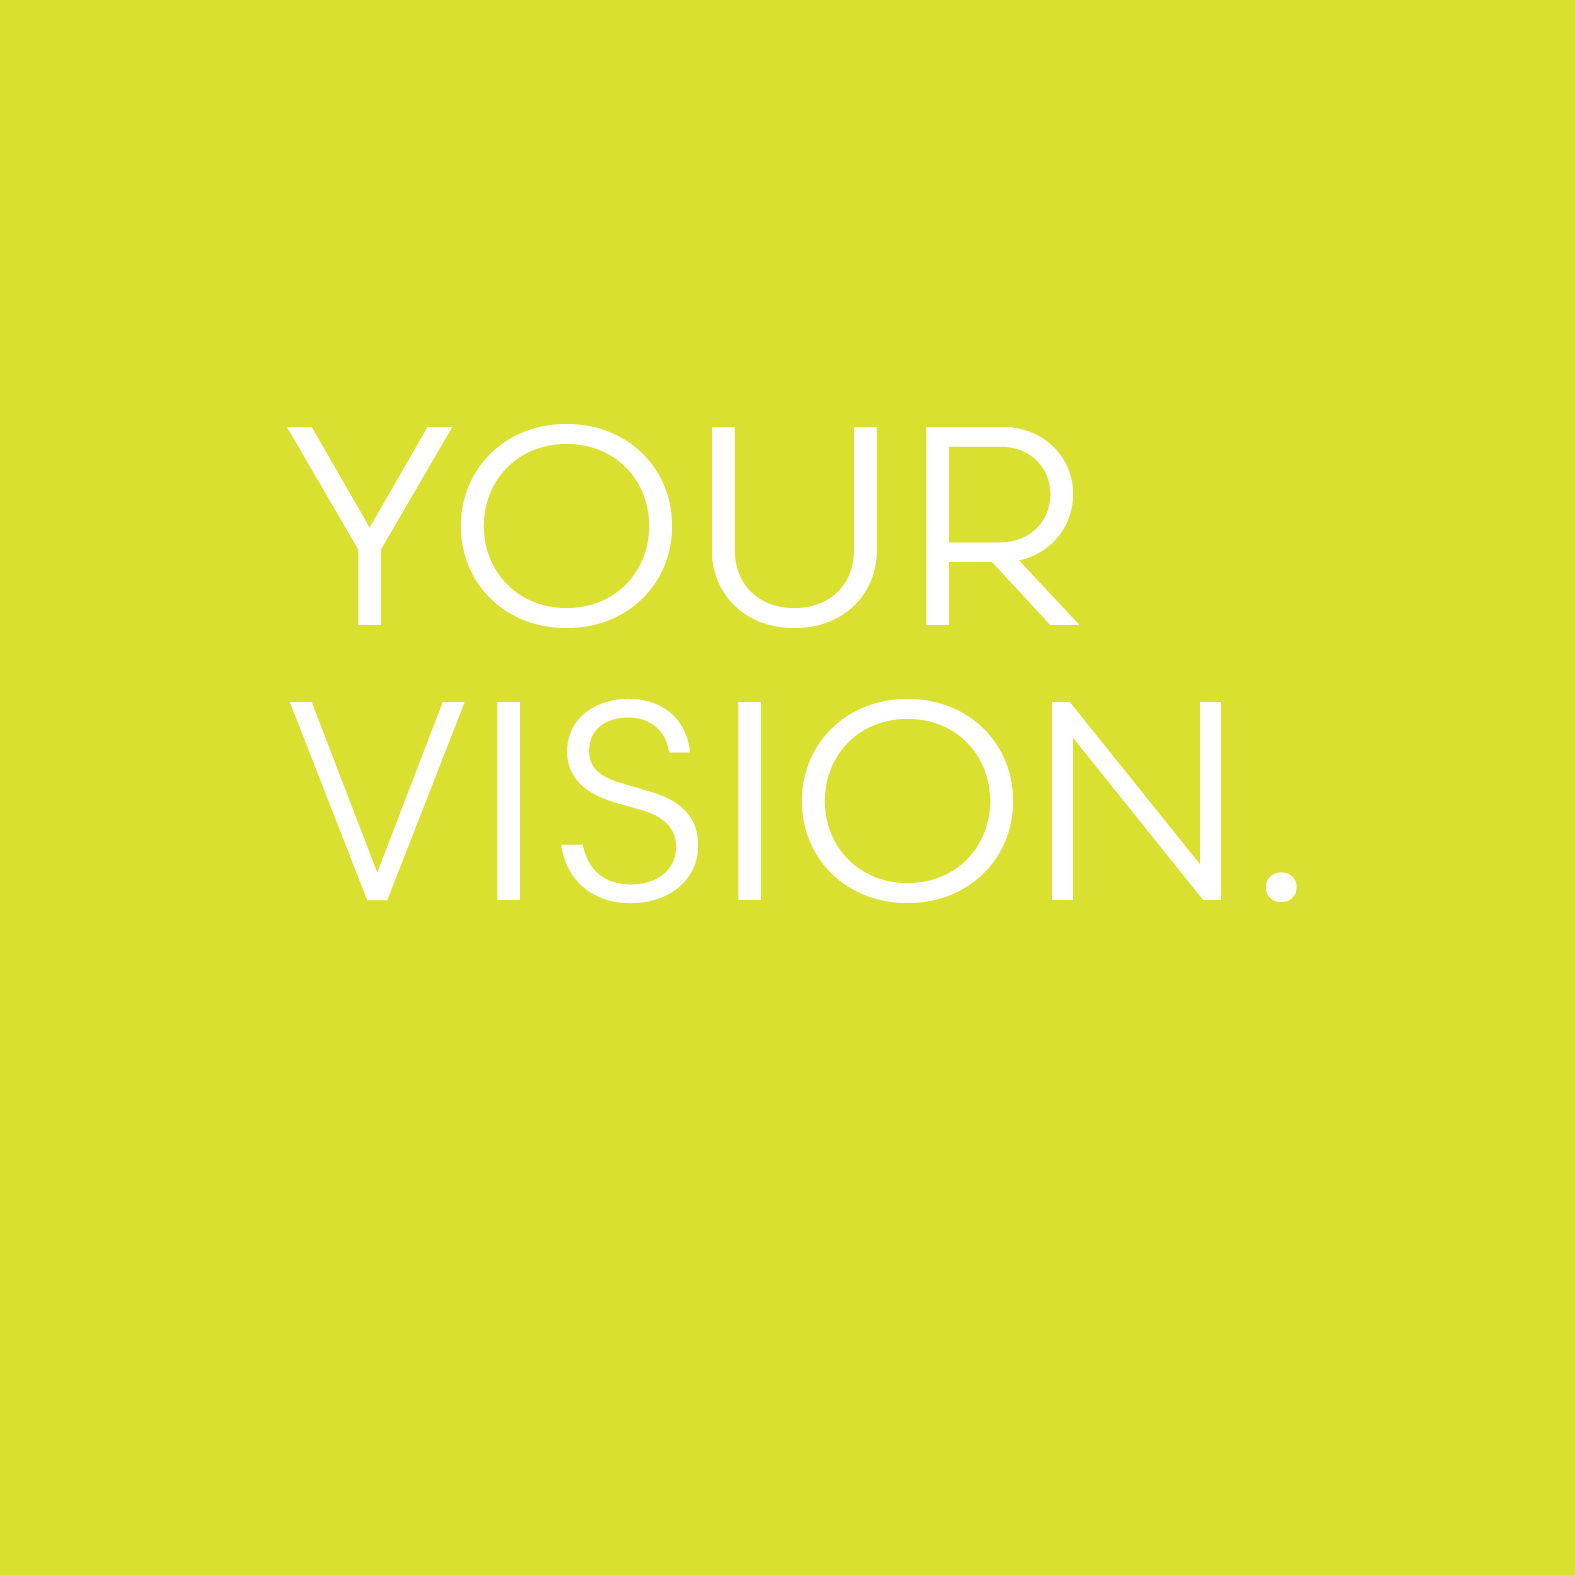 Campaign sq picts yourvision